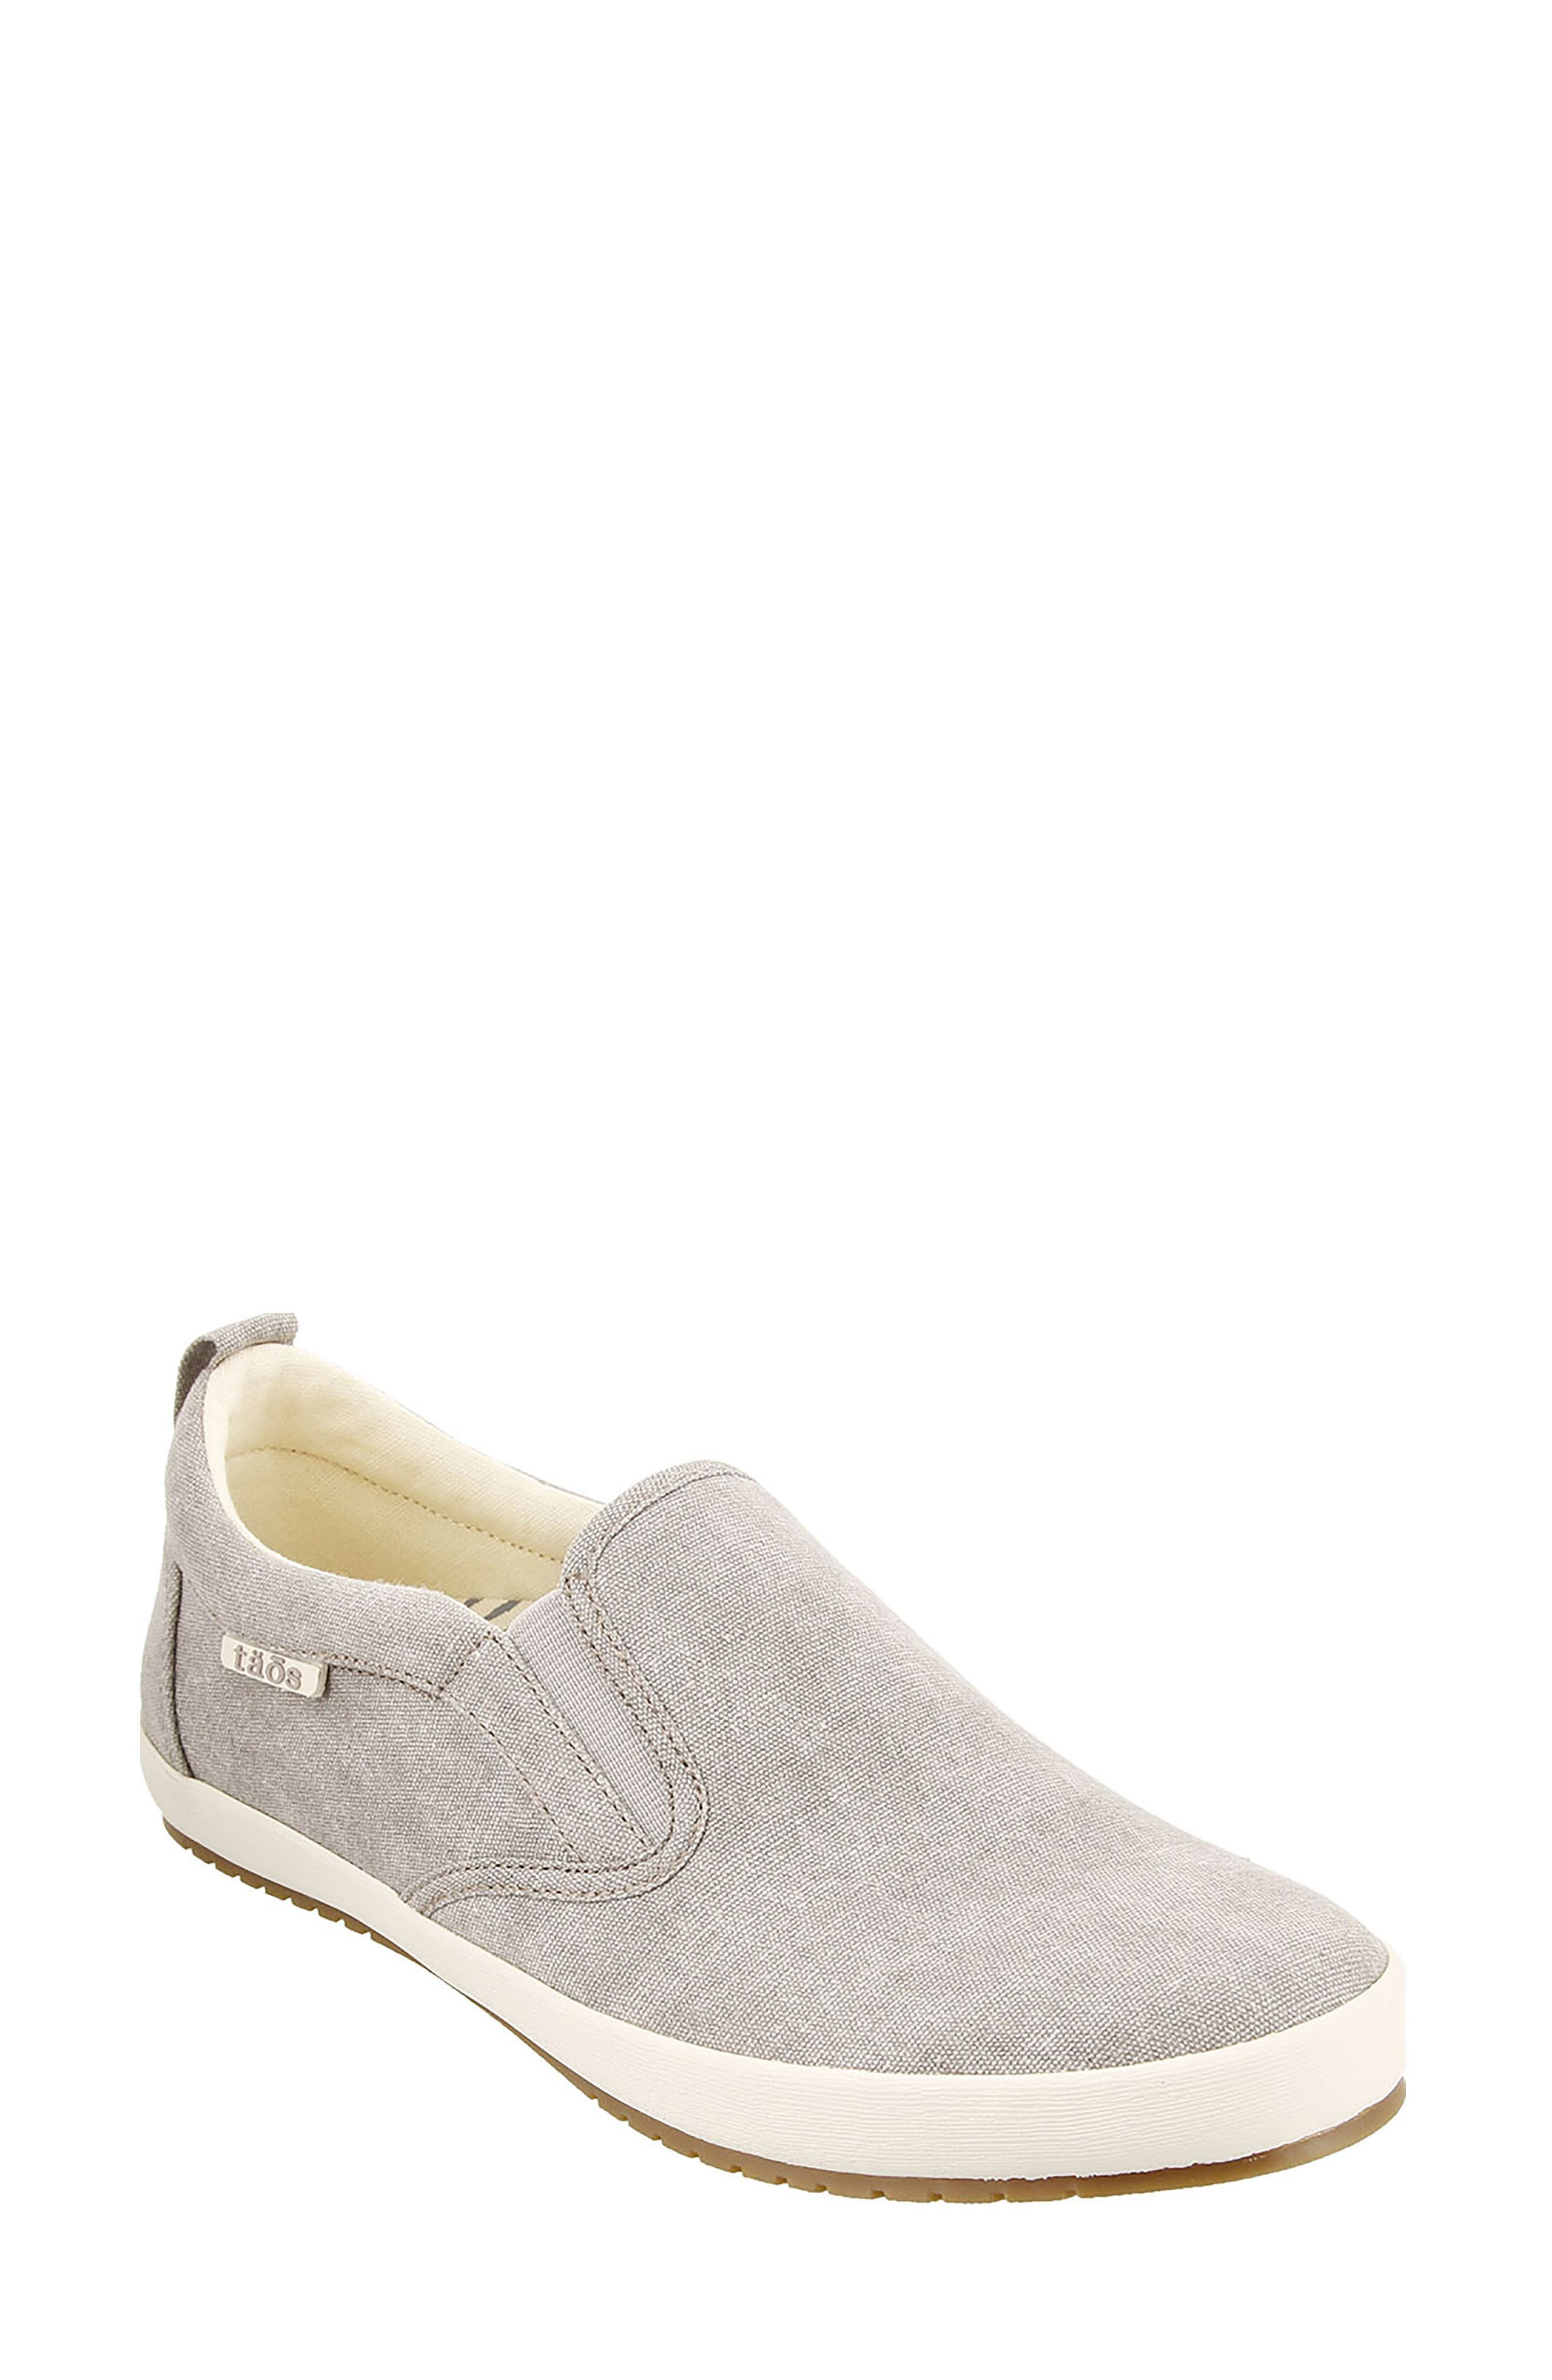 Taos Dandy Slip-On Sneaker (Women)